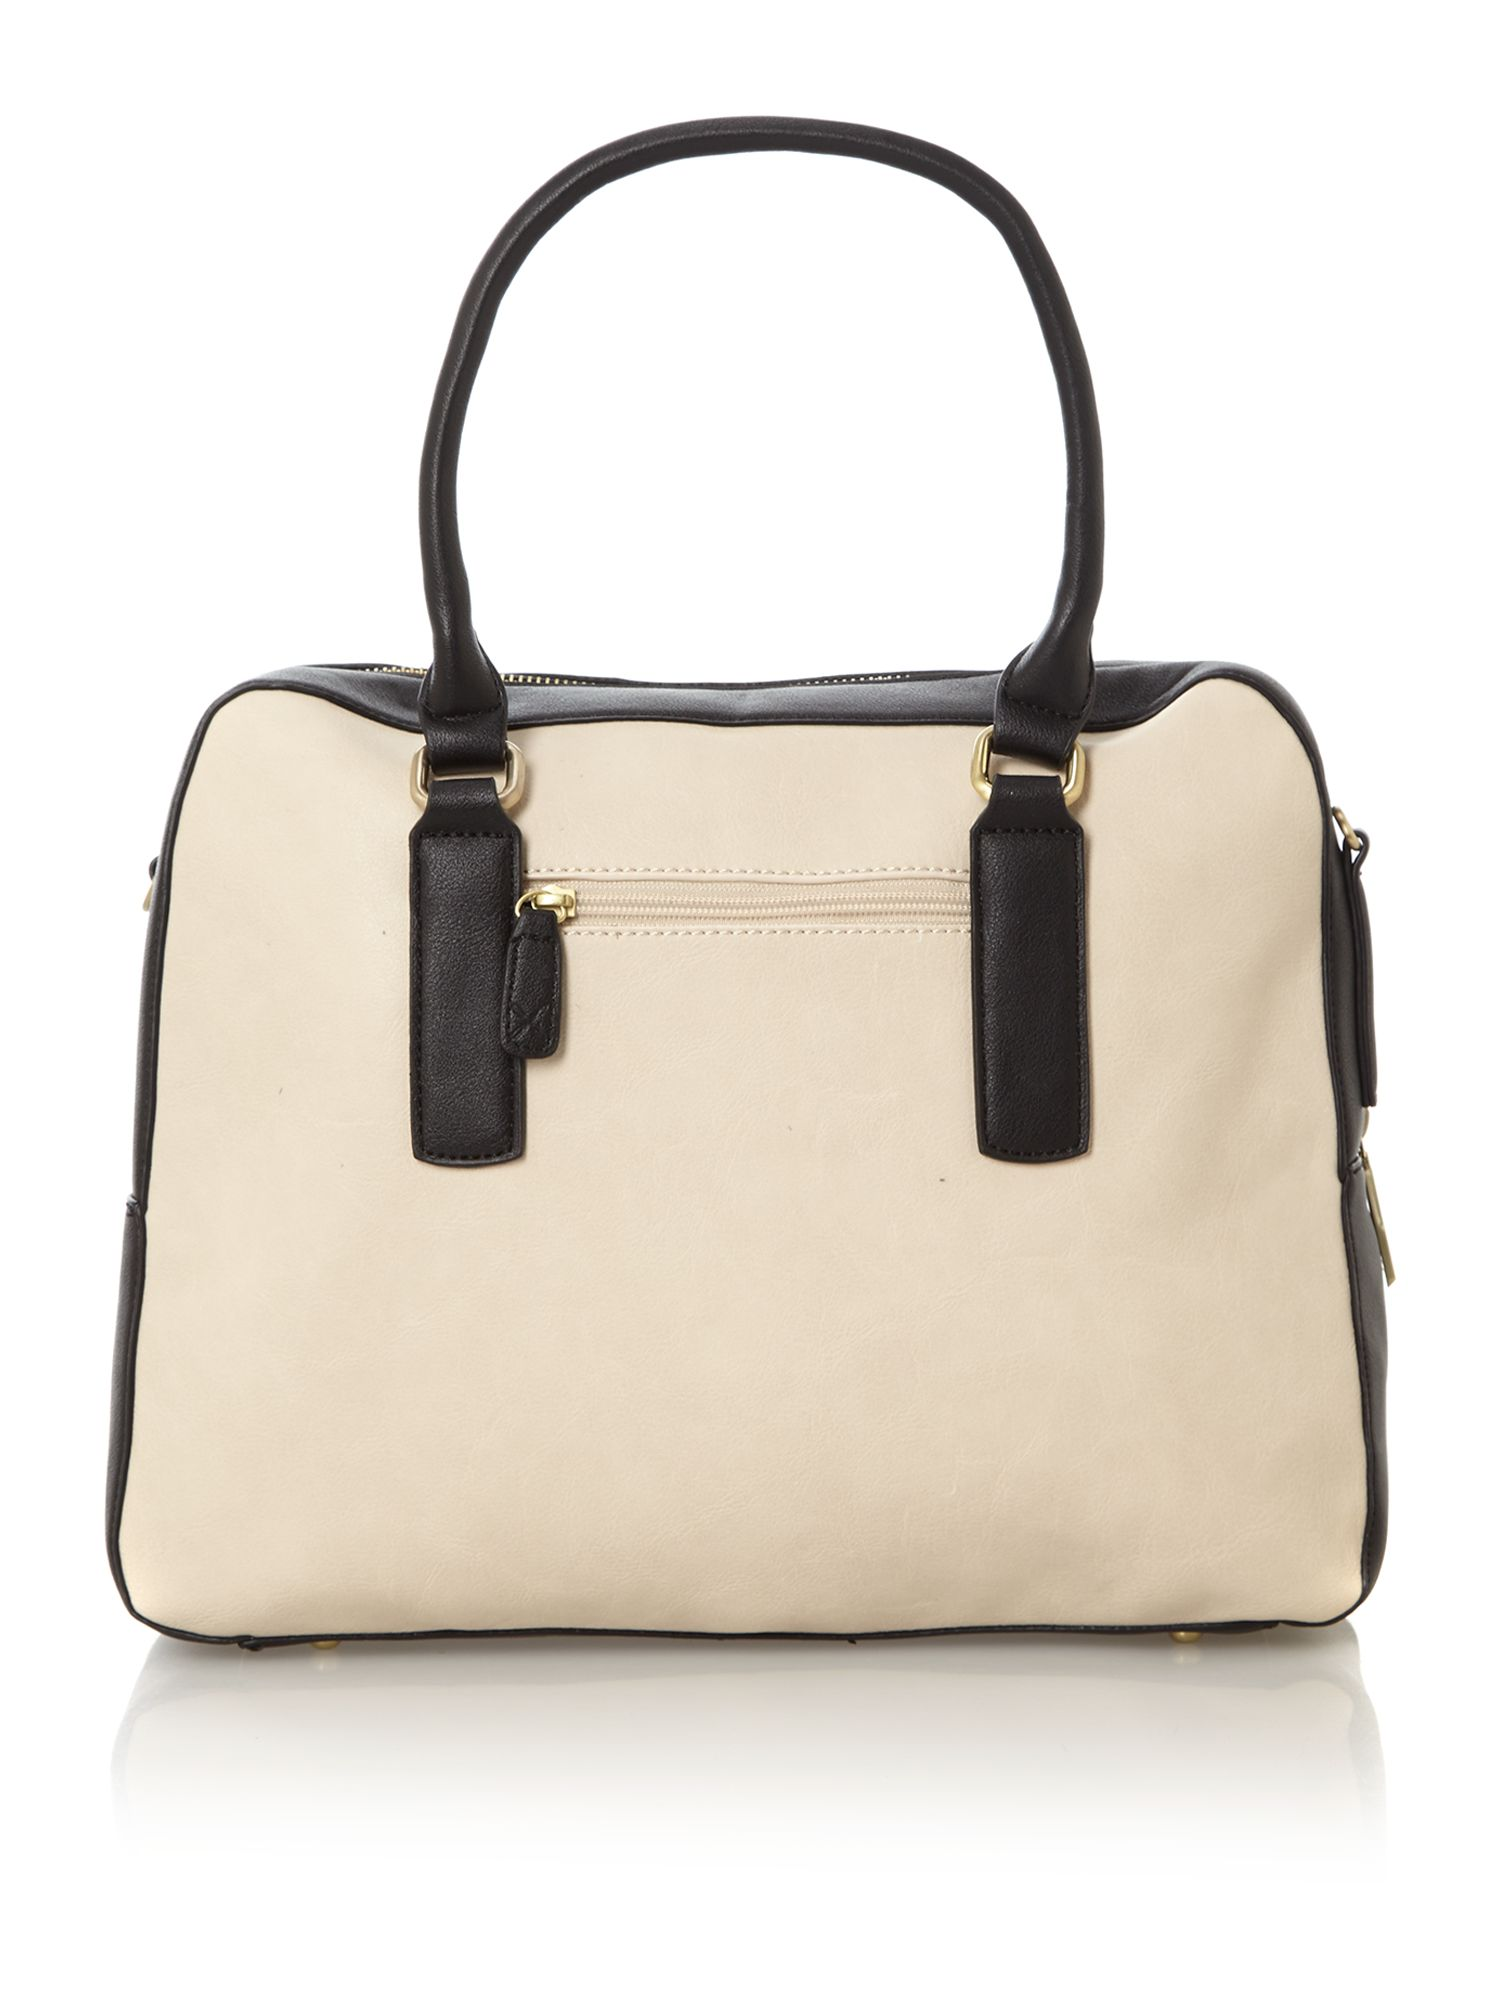 Sienna monochrome box tote bag